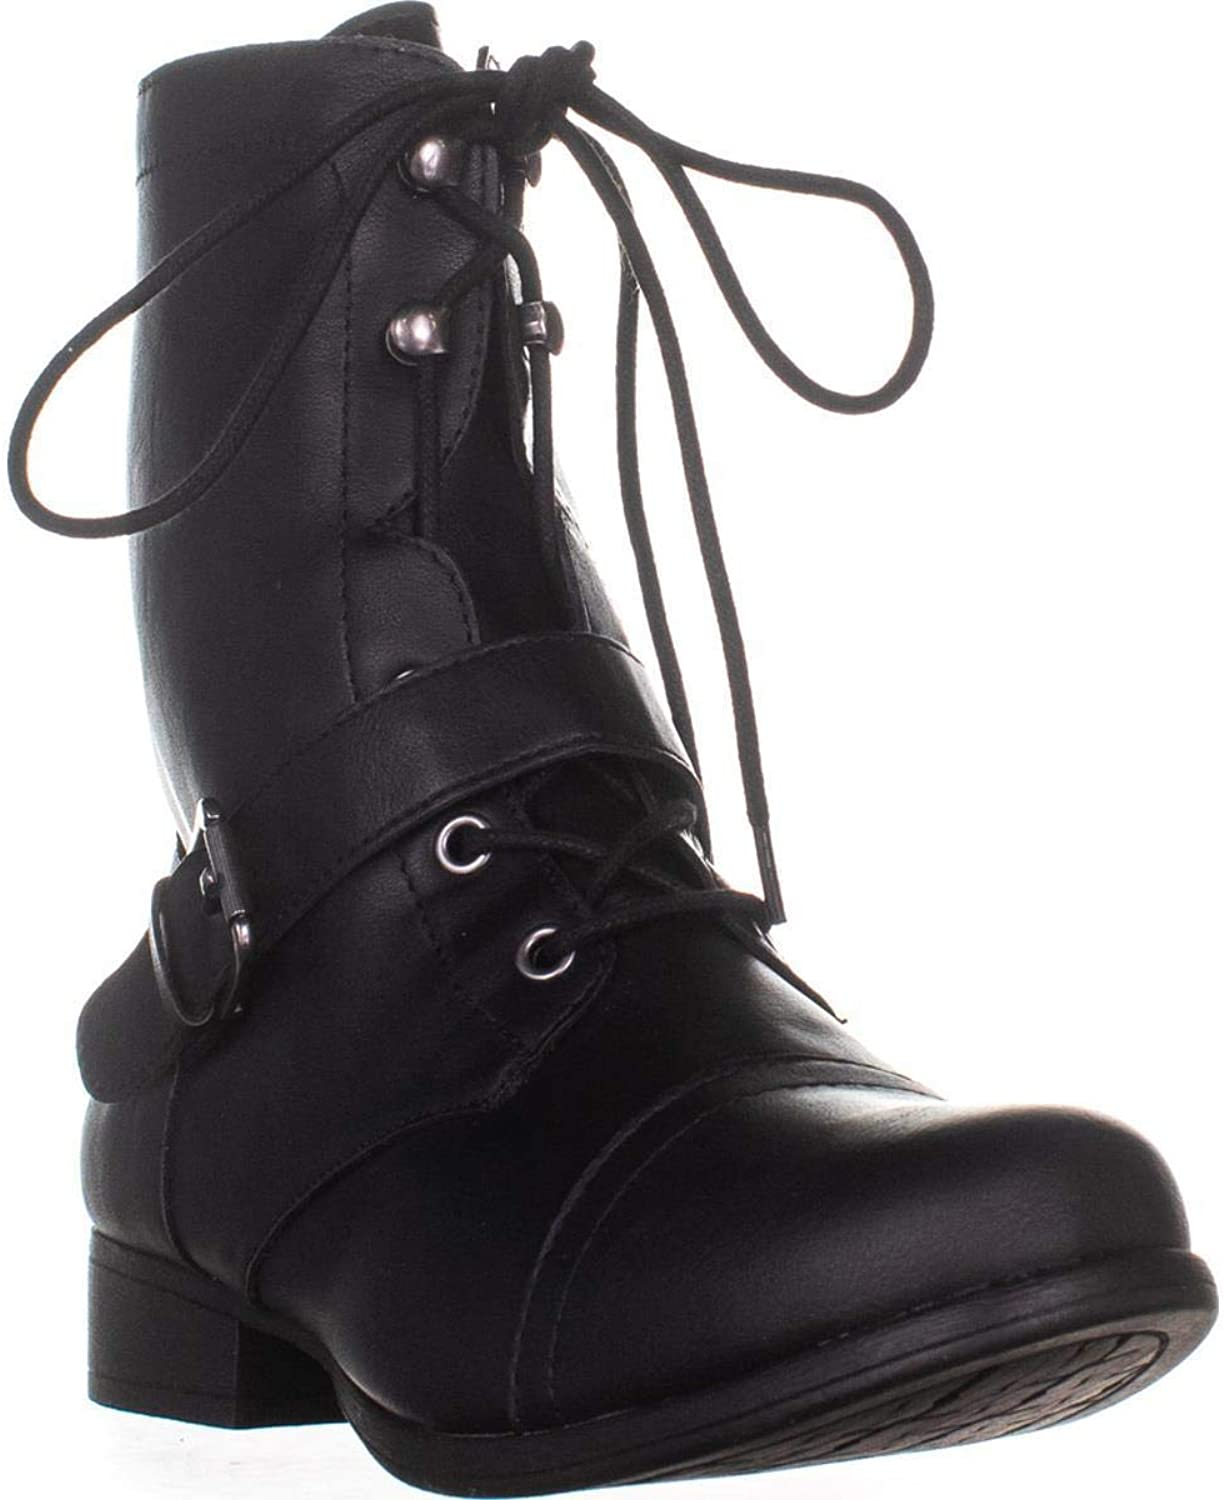 American Rag AR35 Farahh Lace-Up Combat Boots, Black